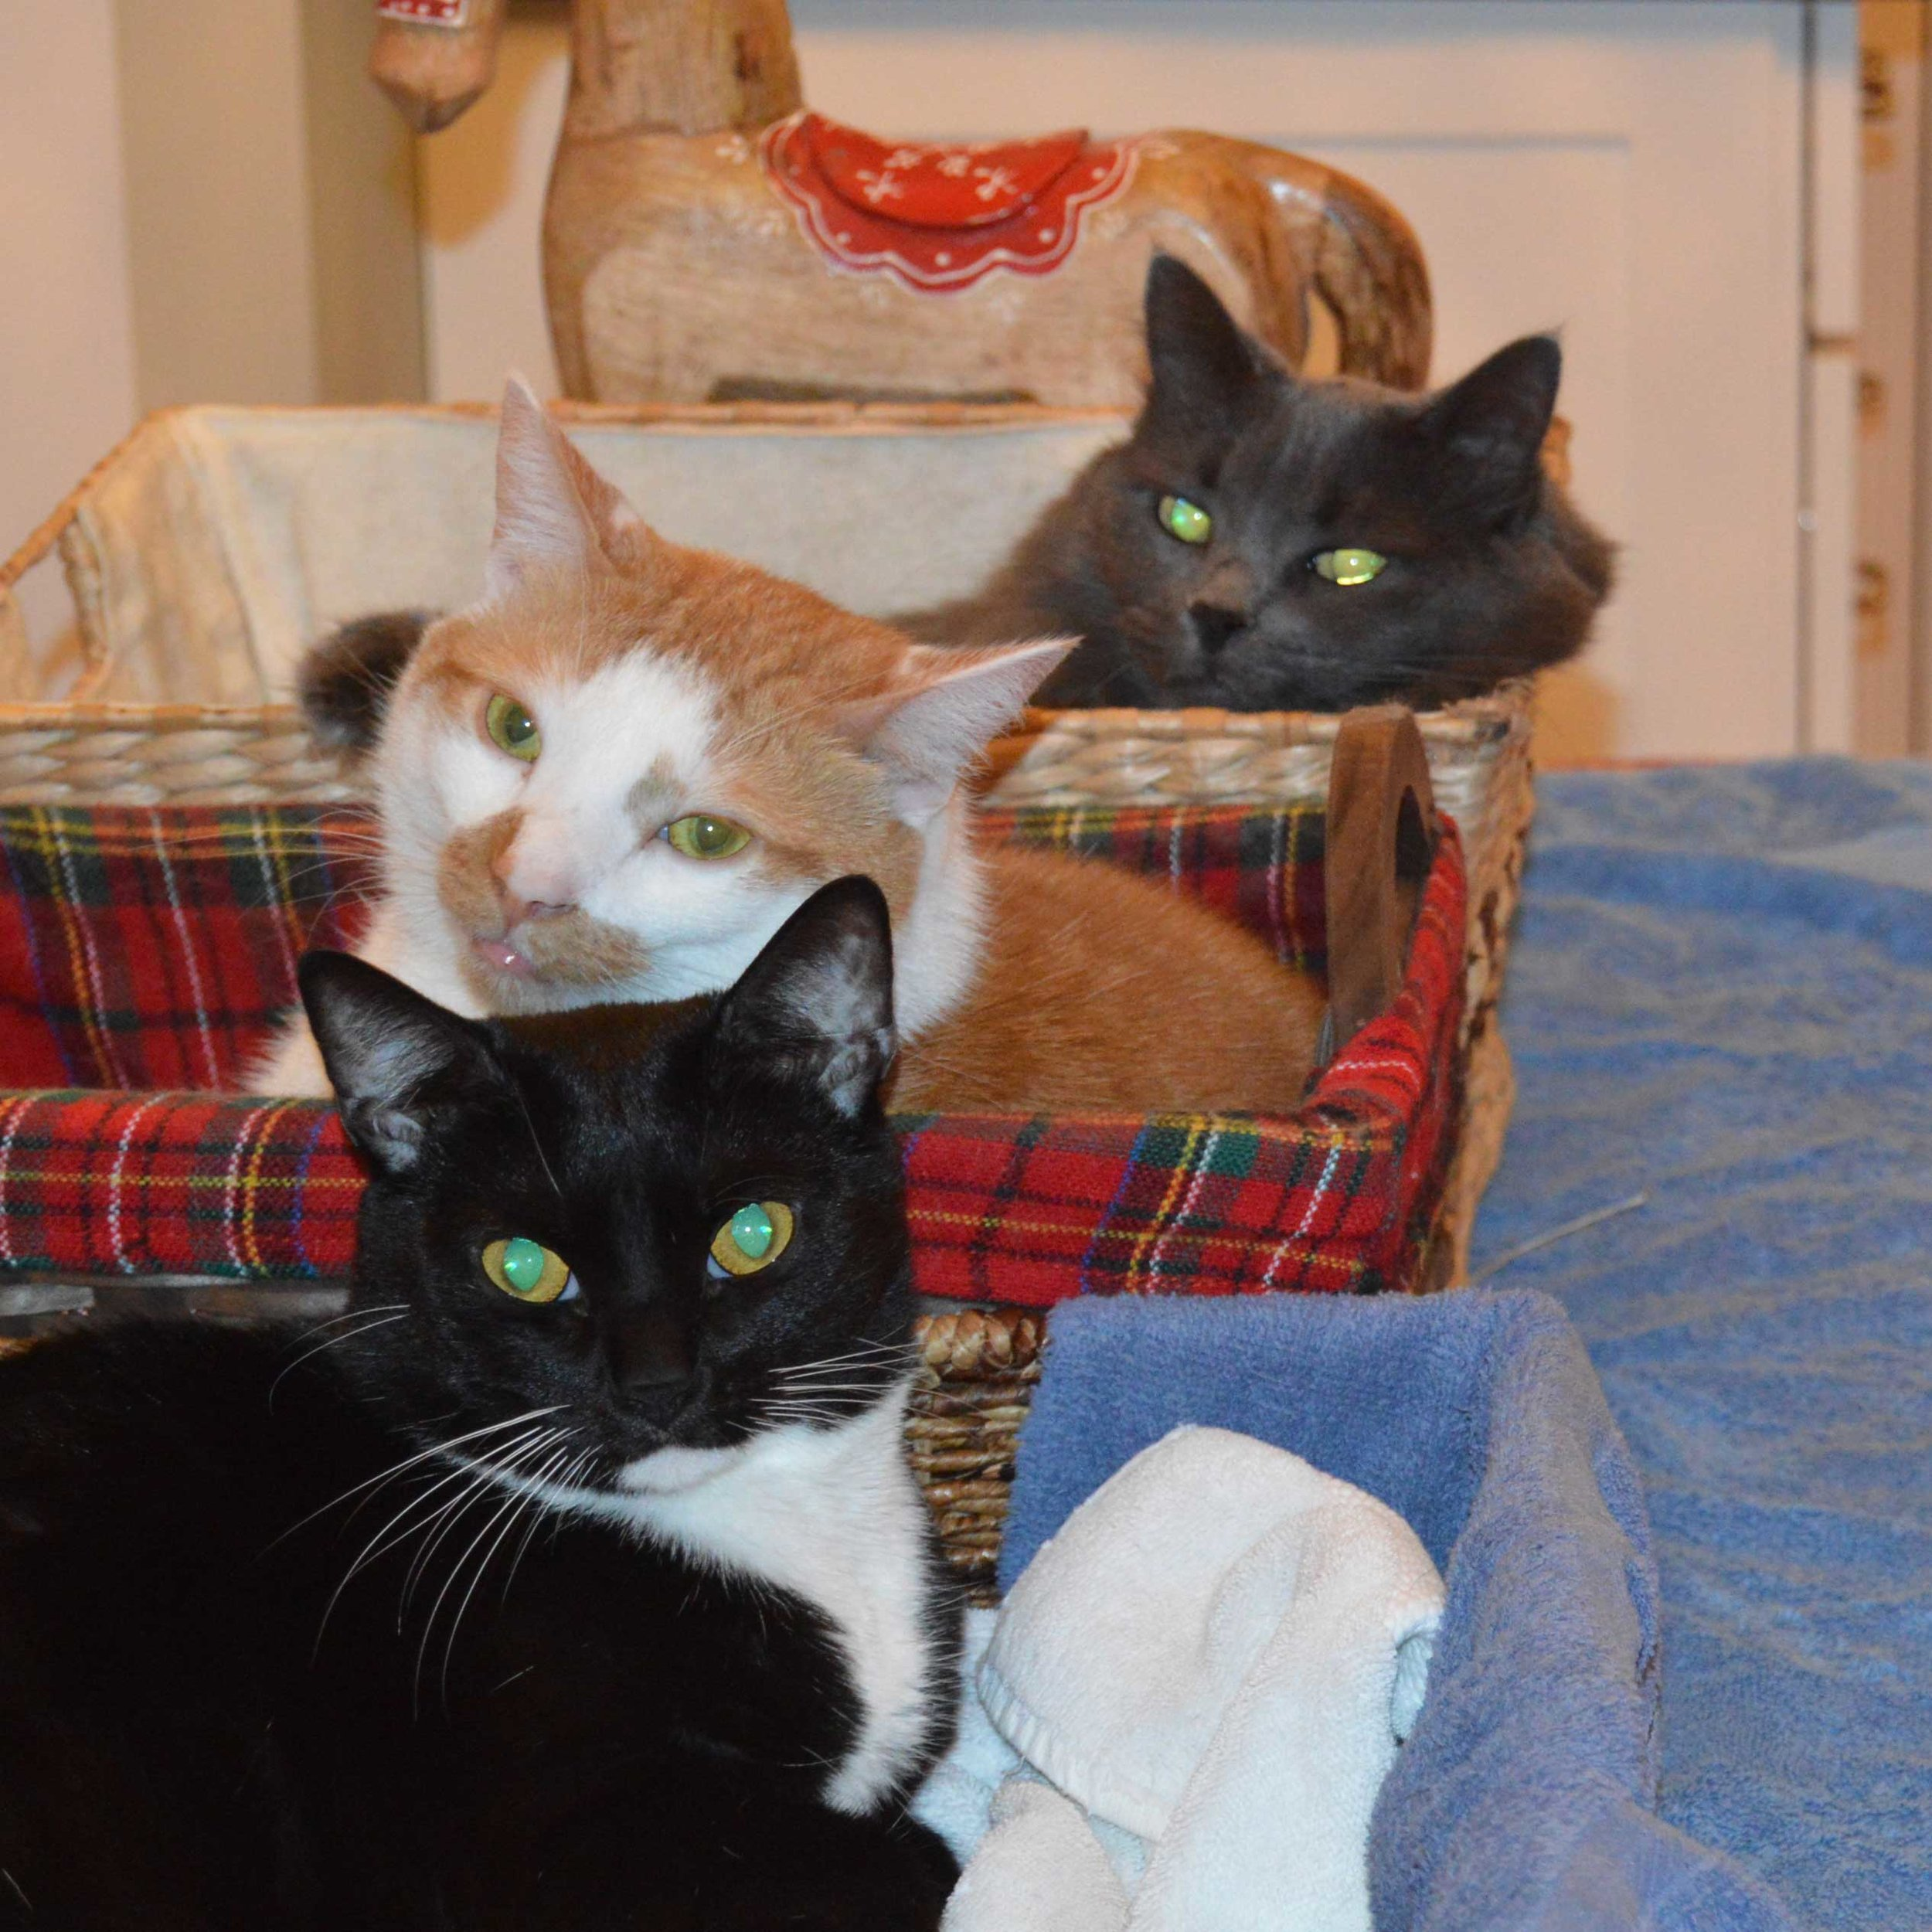 Our three cats